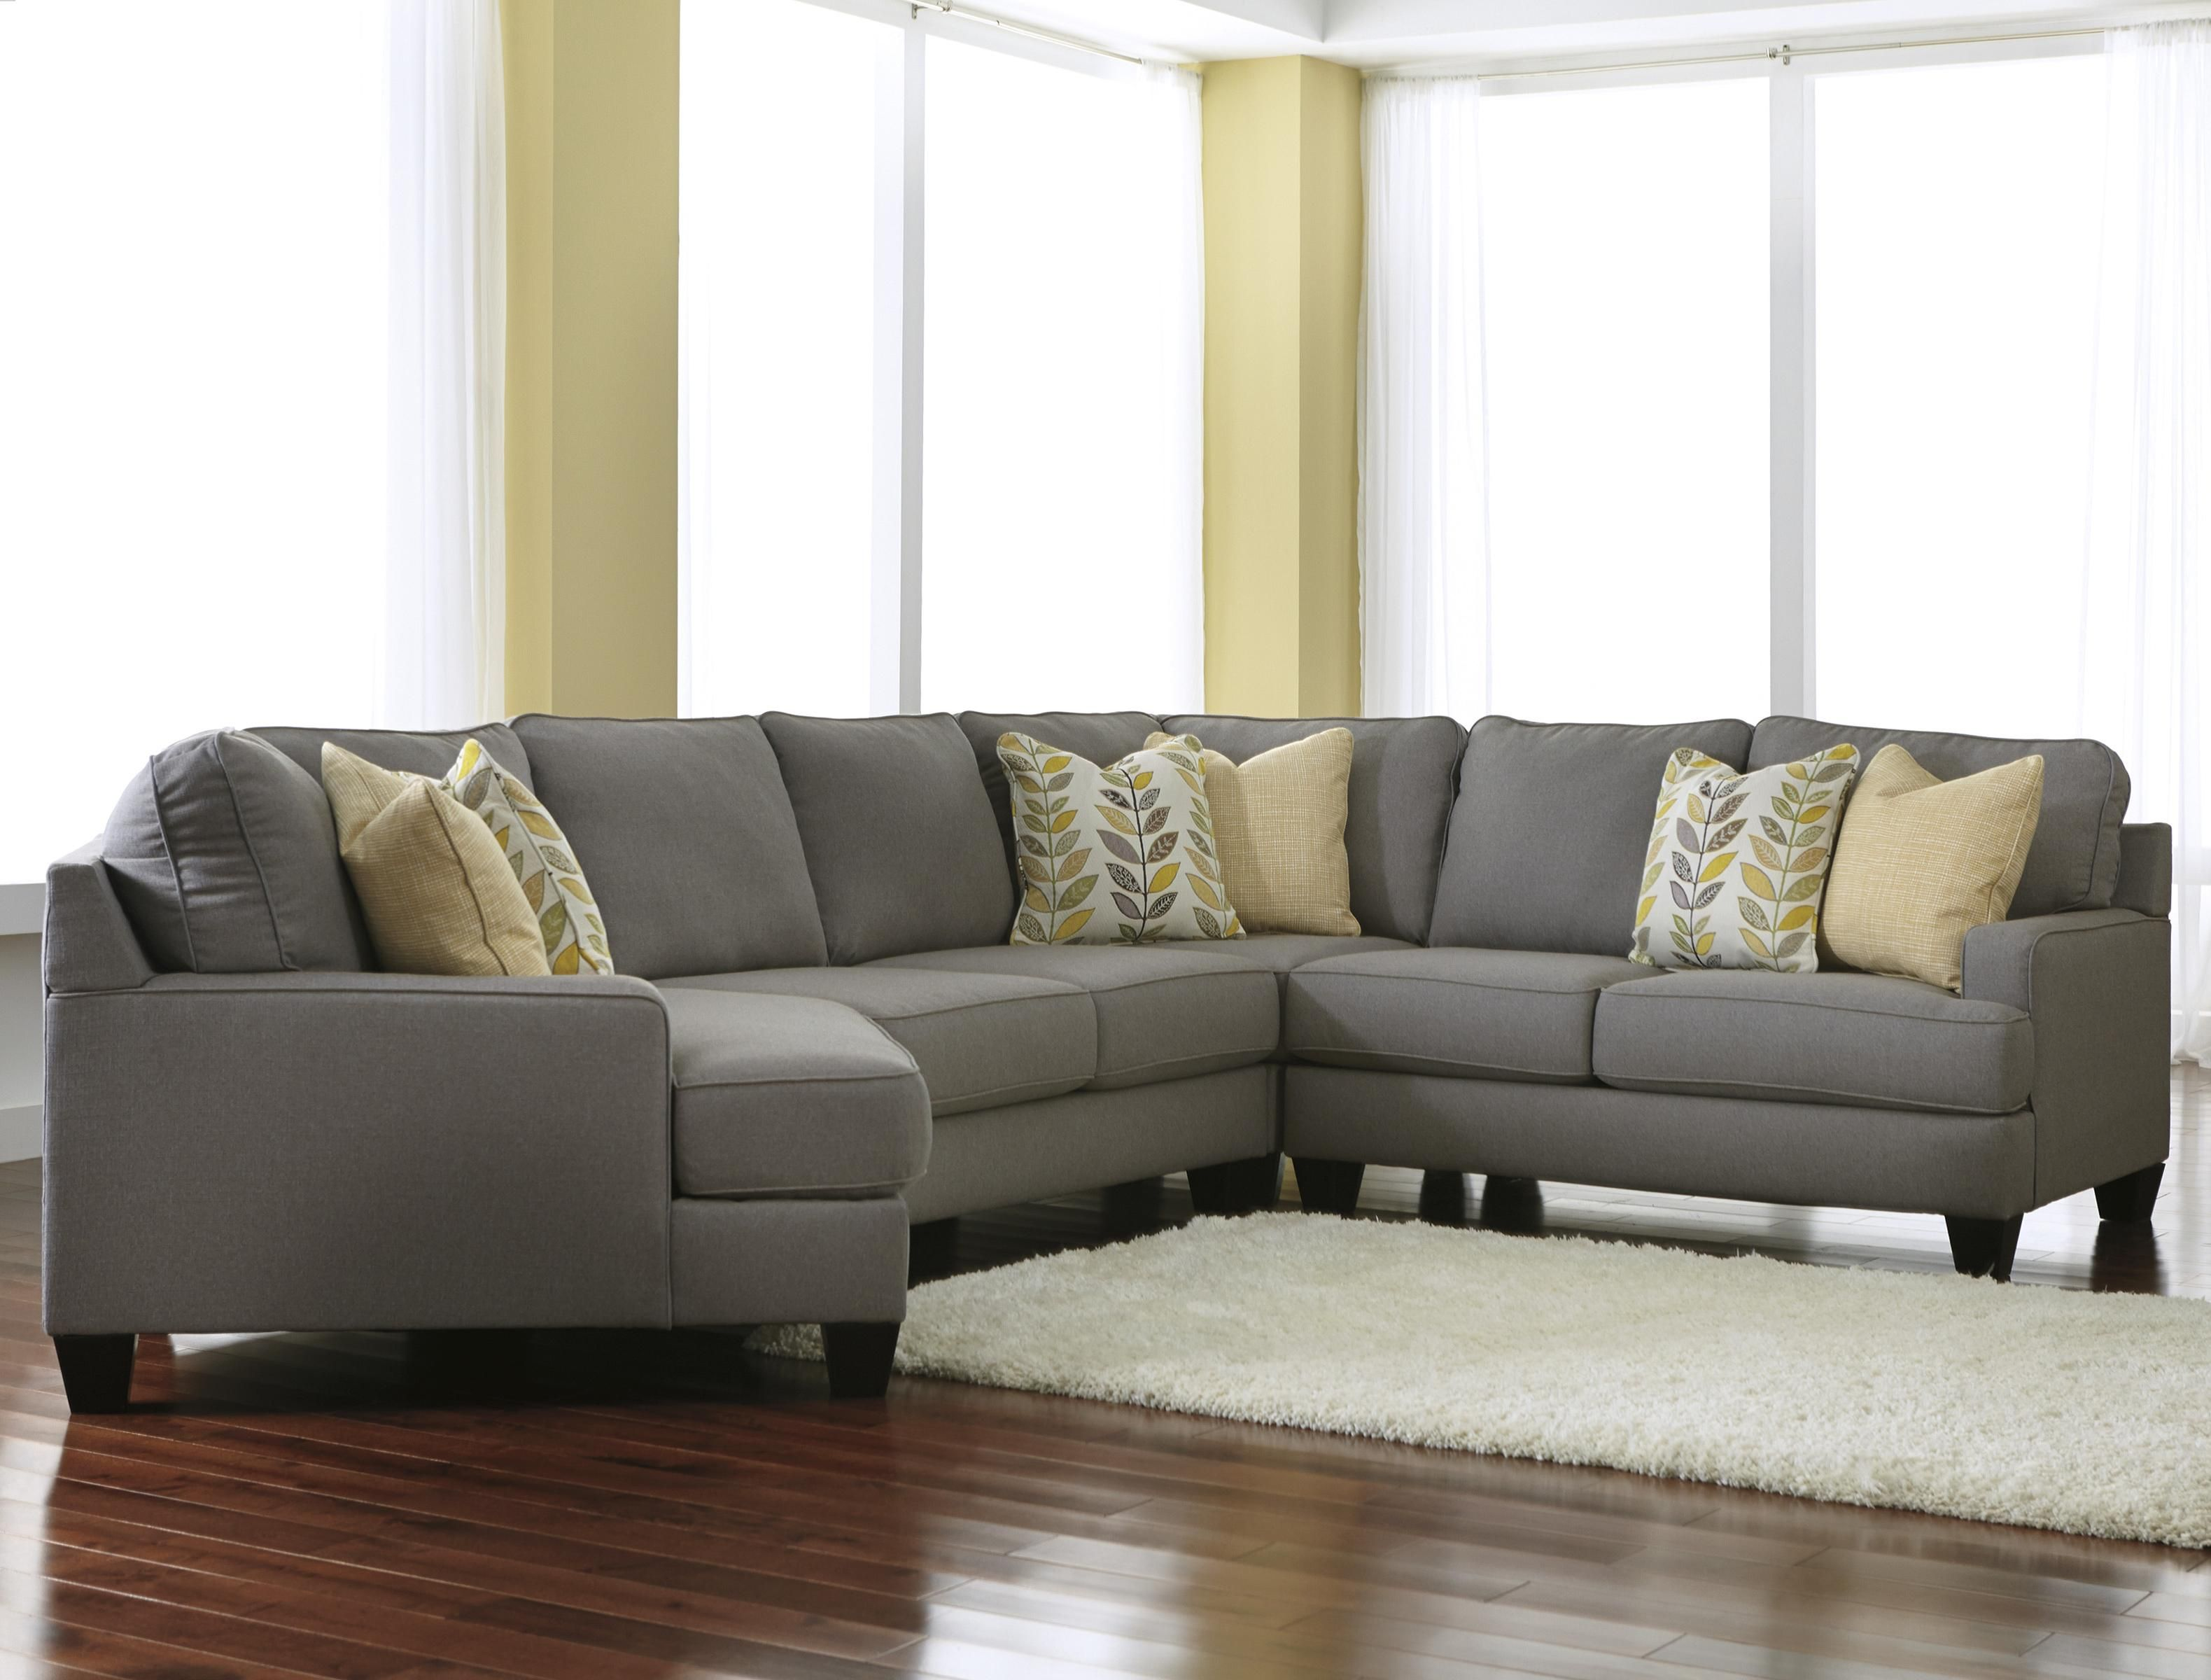 Sectional with cuddle corner Living Room ideas